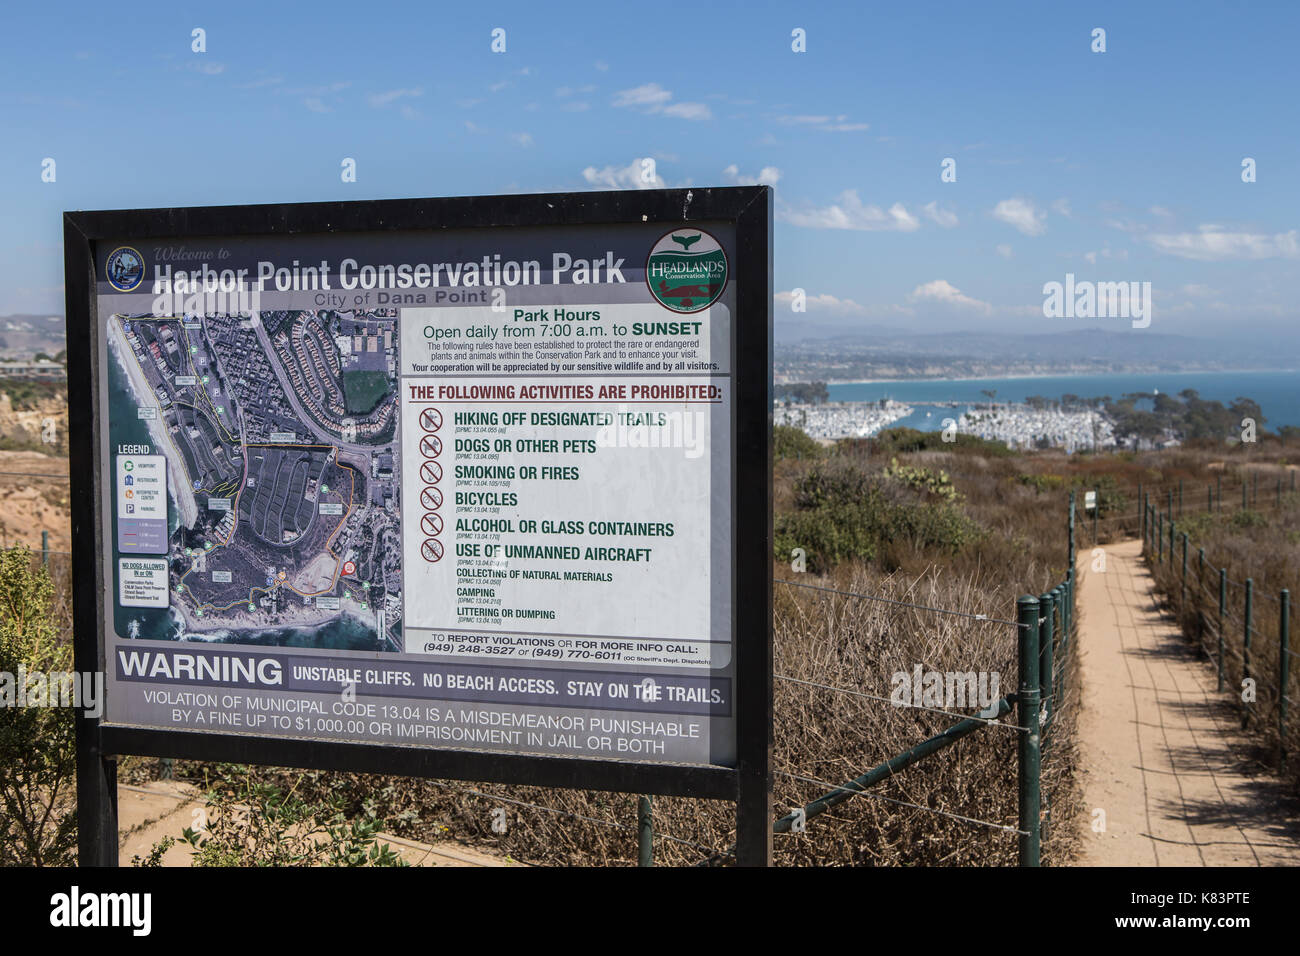 A sign at the Harbor point  Conservation Park in Dana Point California USA - Stock Image